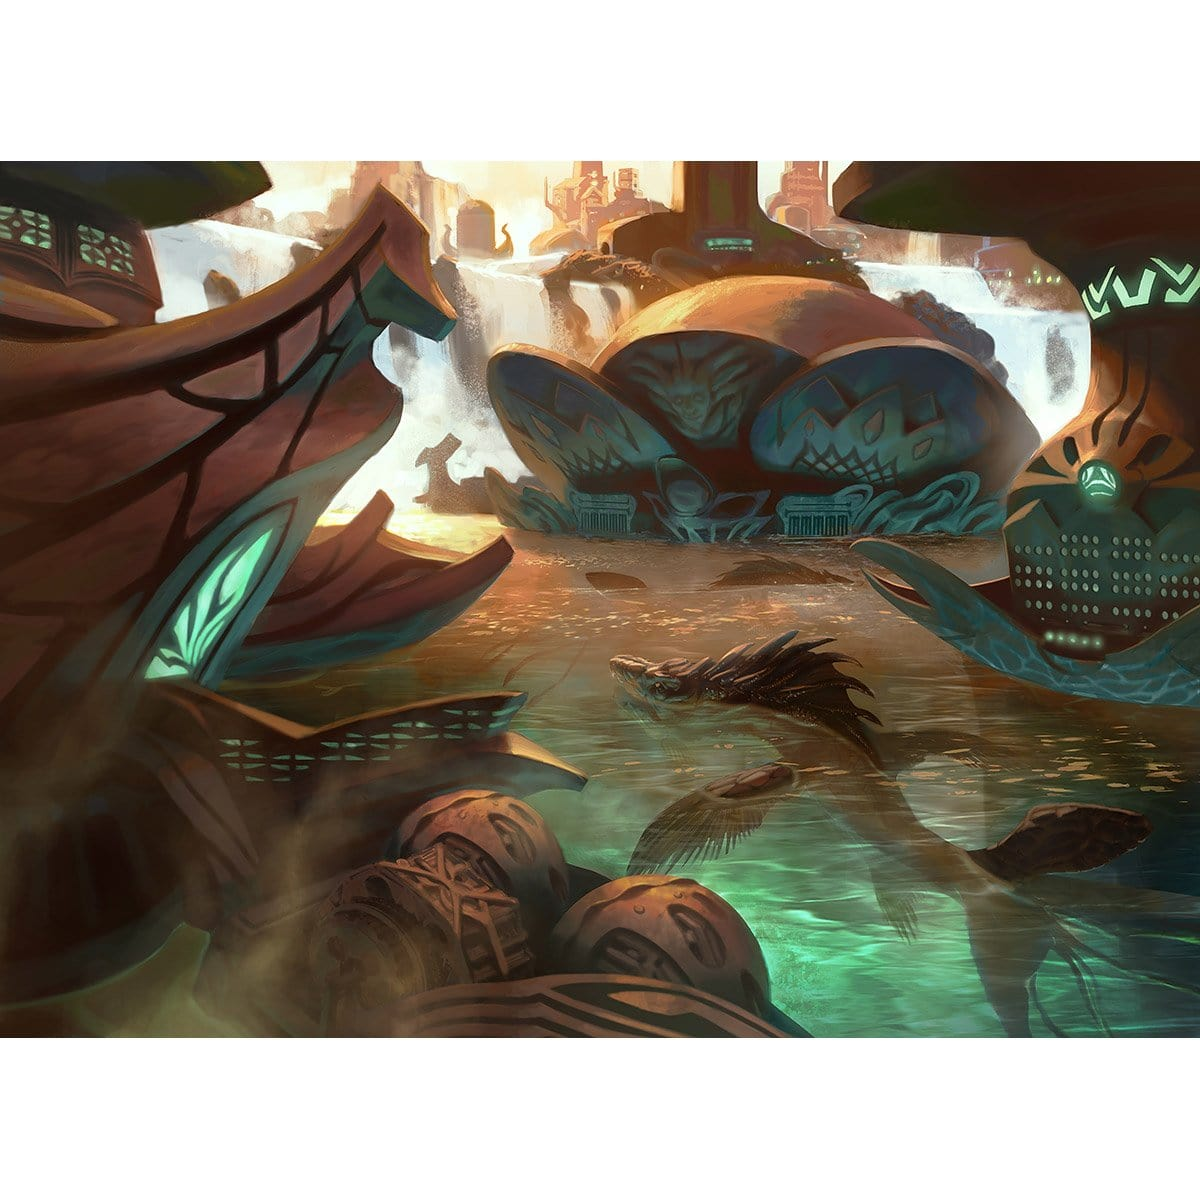 Breeding Pool Print - Print - Original Magic Art - Accessories for Magic the Gathering and other card games